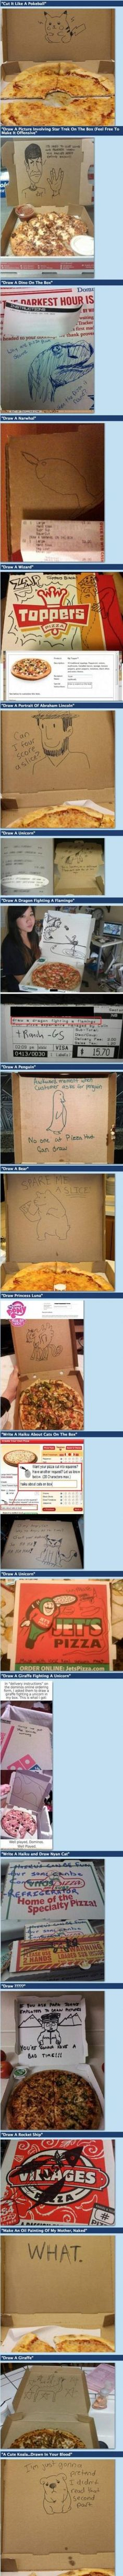 """pizza delivery """"special instructions"""" requests. Who knew they would do that?"""